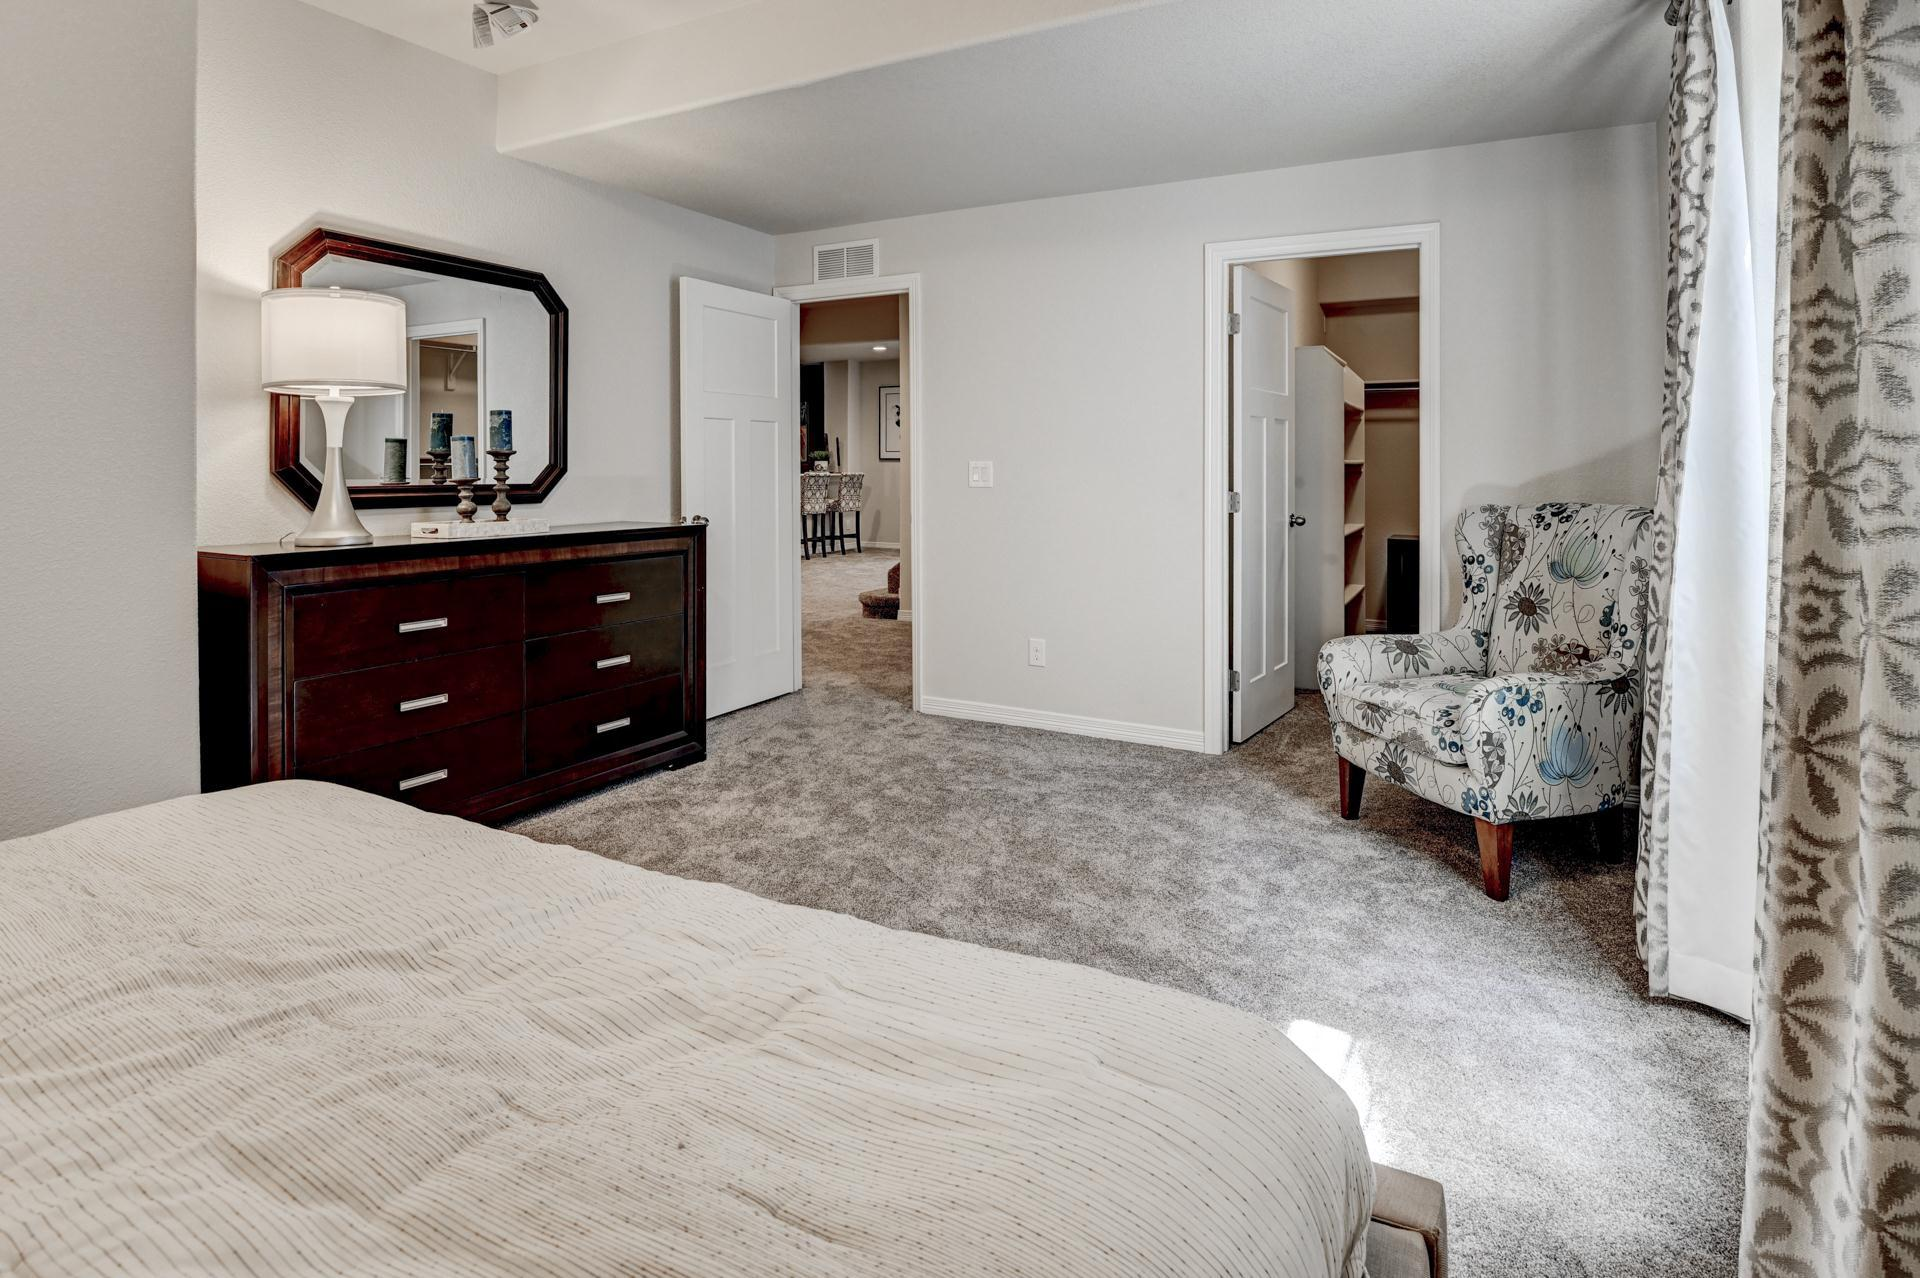 Bedroom featured in the Sunlight Peak (Unfinished Basement) By Reunion Homes